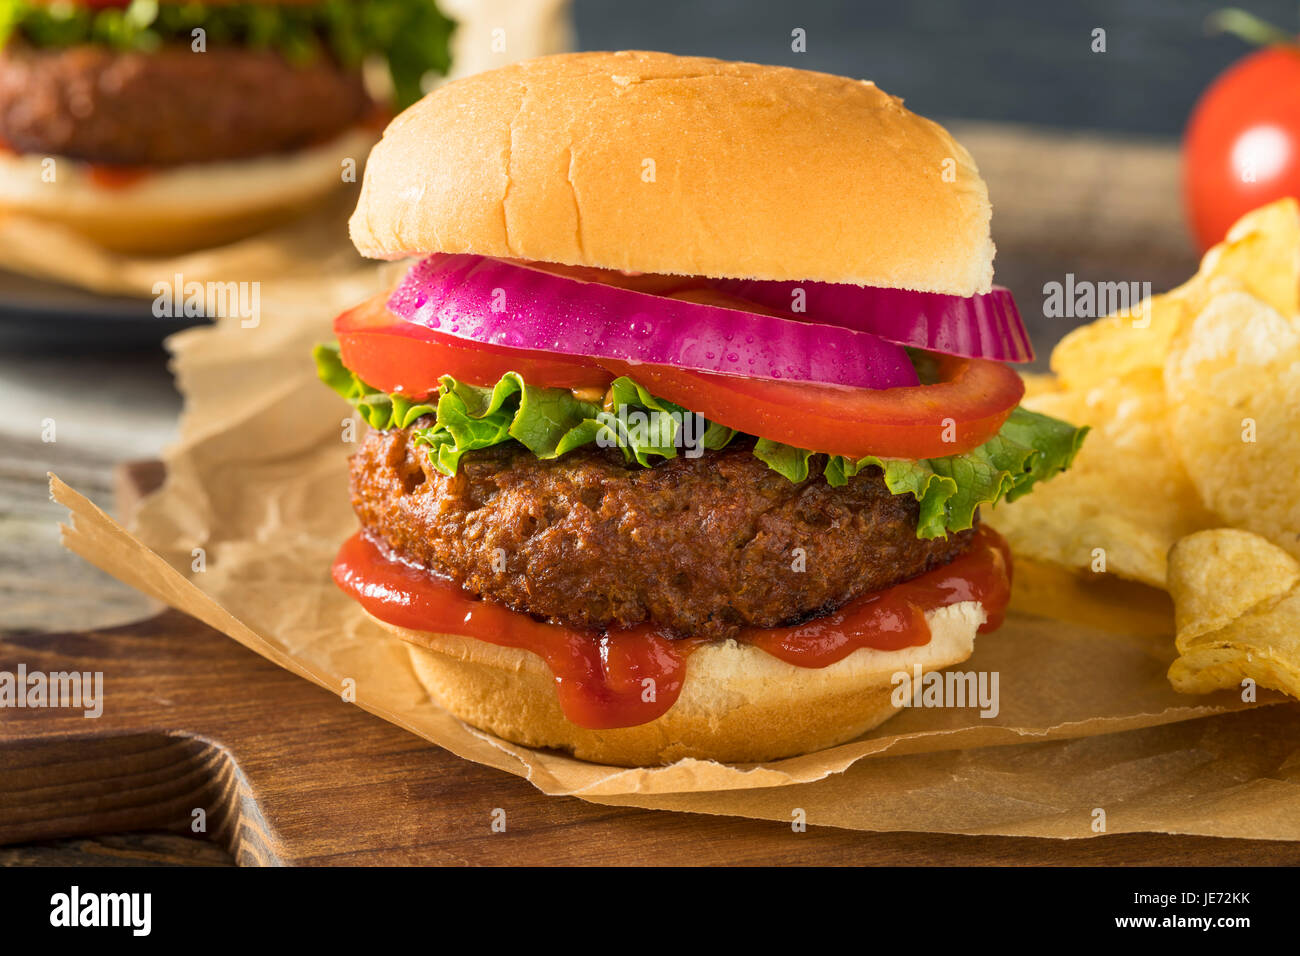 Healthy Vegan Vegetarian Meat Free Burger with Lettuce Tomato and Onion - Stock Image